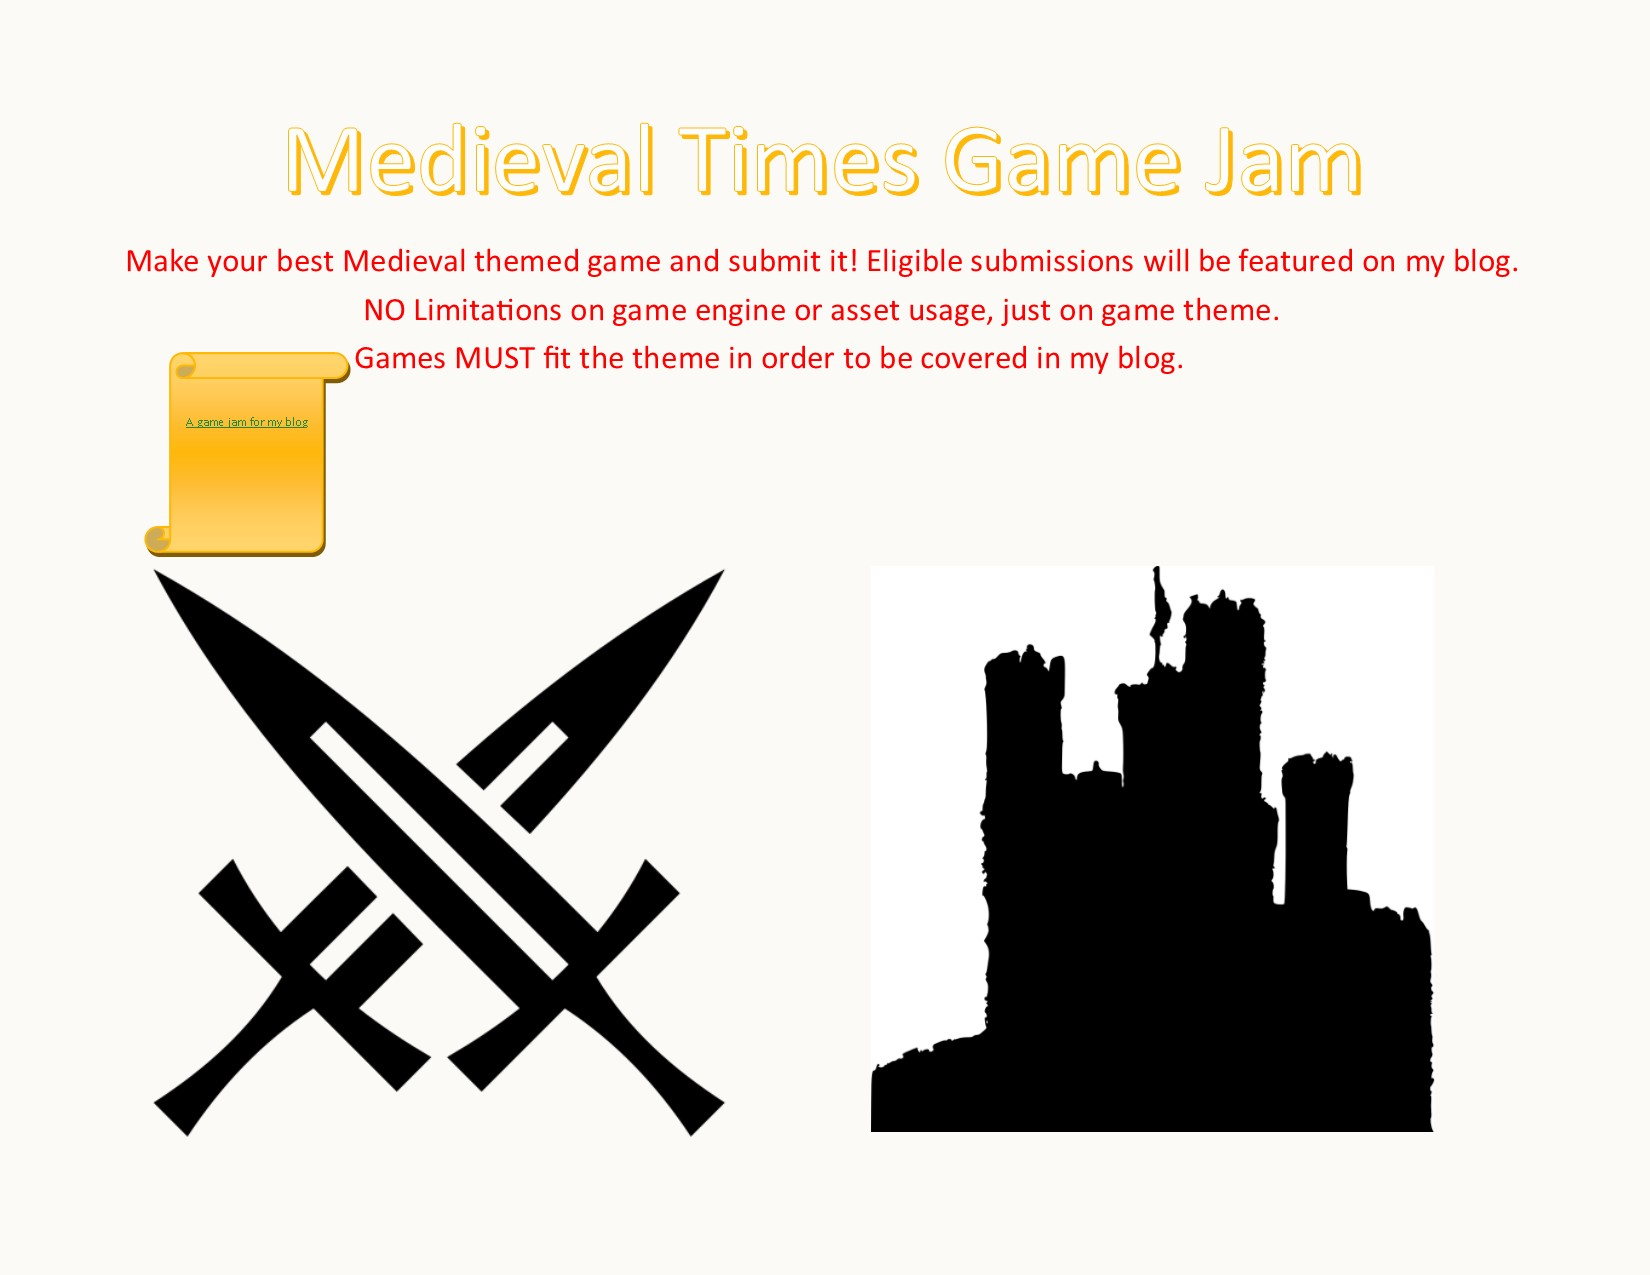 Get Ready For A Great Game Jam!